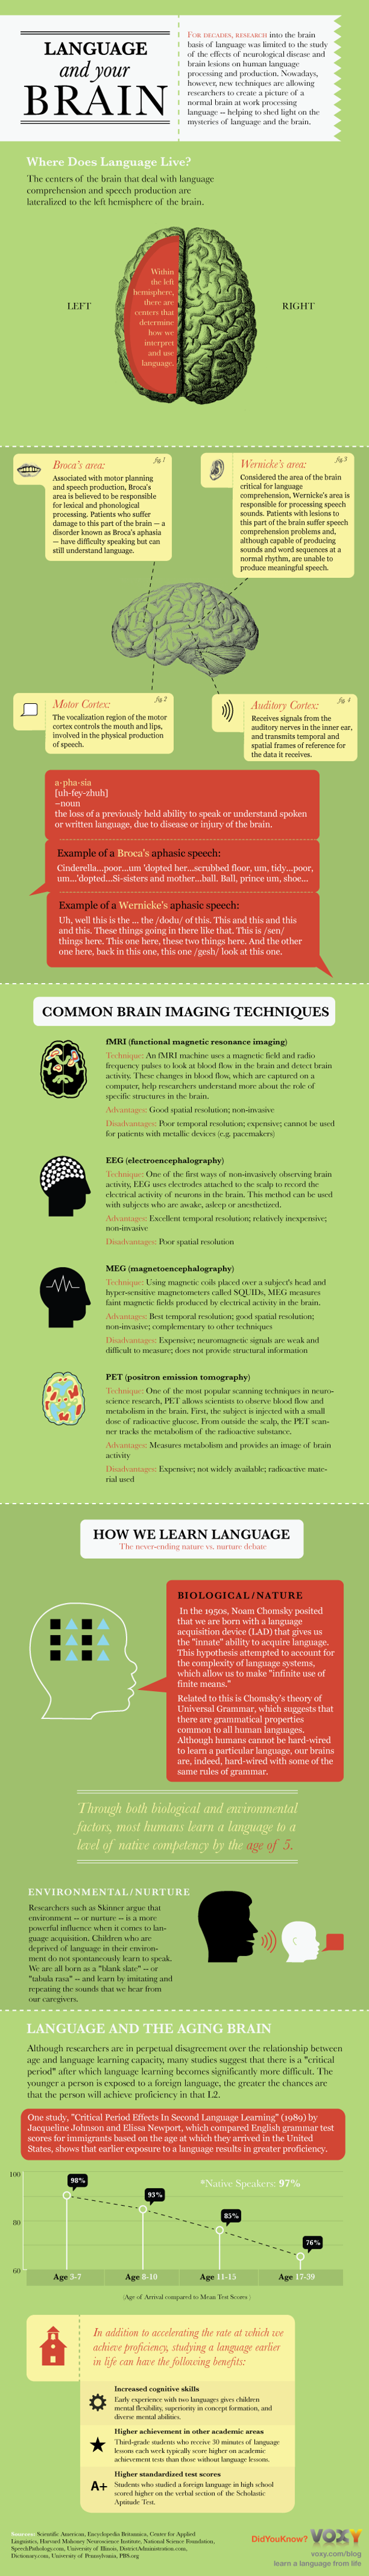 Language and Brain - Infographics - Immagine: www.voxyblog.com